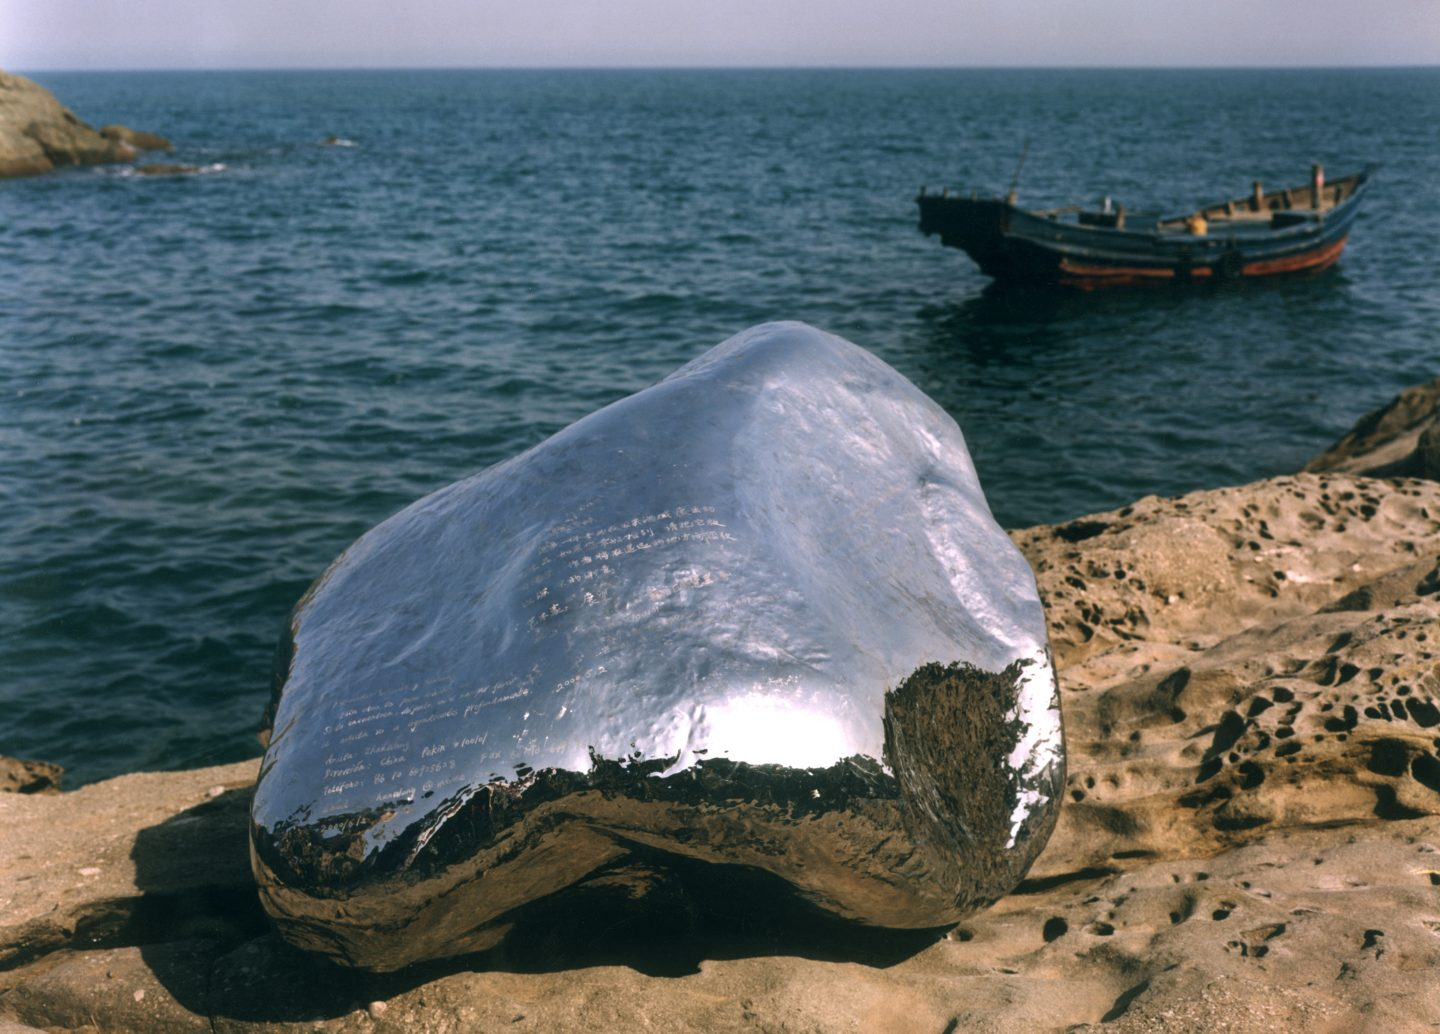 A large, shiny silver rock-like object rests on a rocky shoreline. A small boat floats in the water nearby.